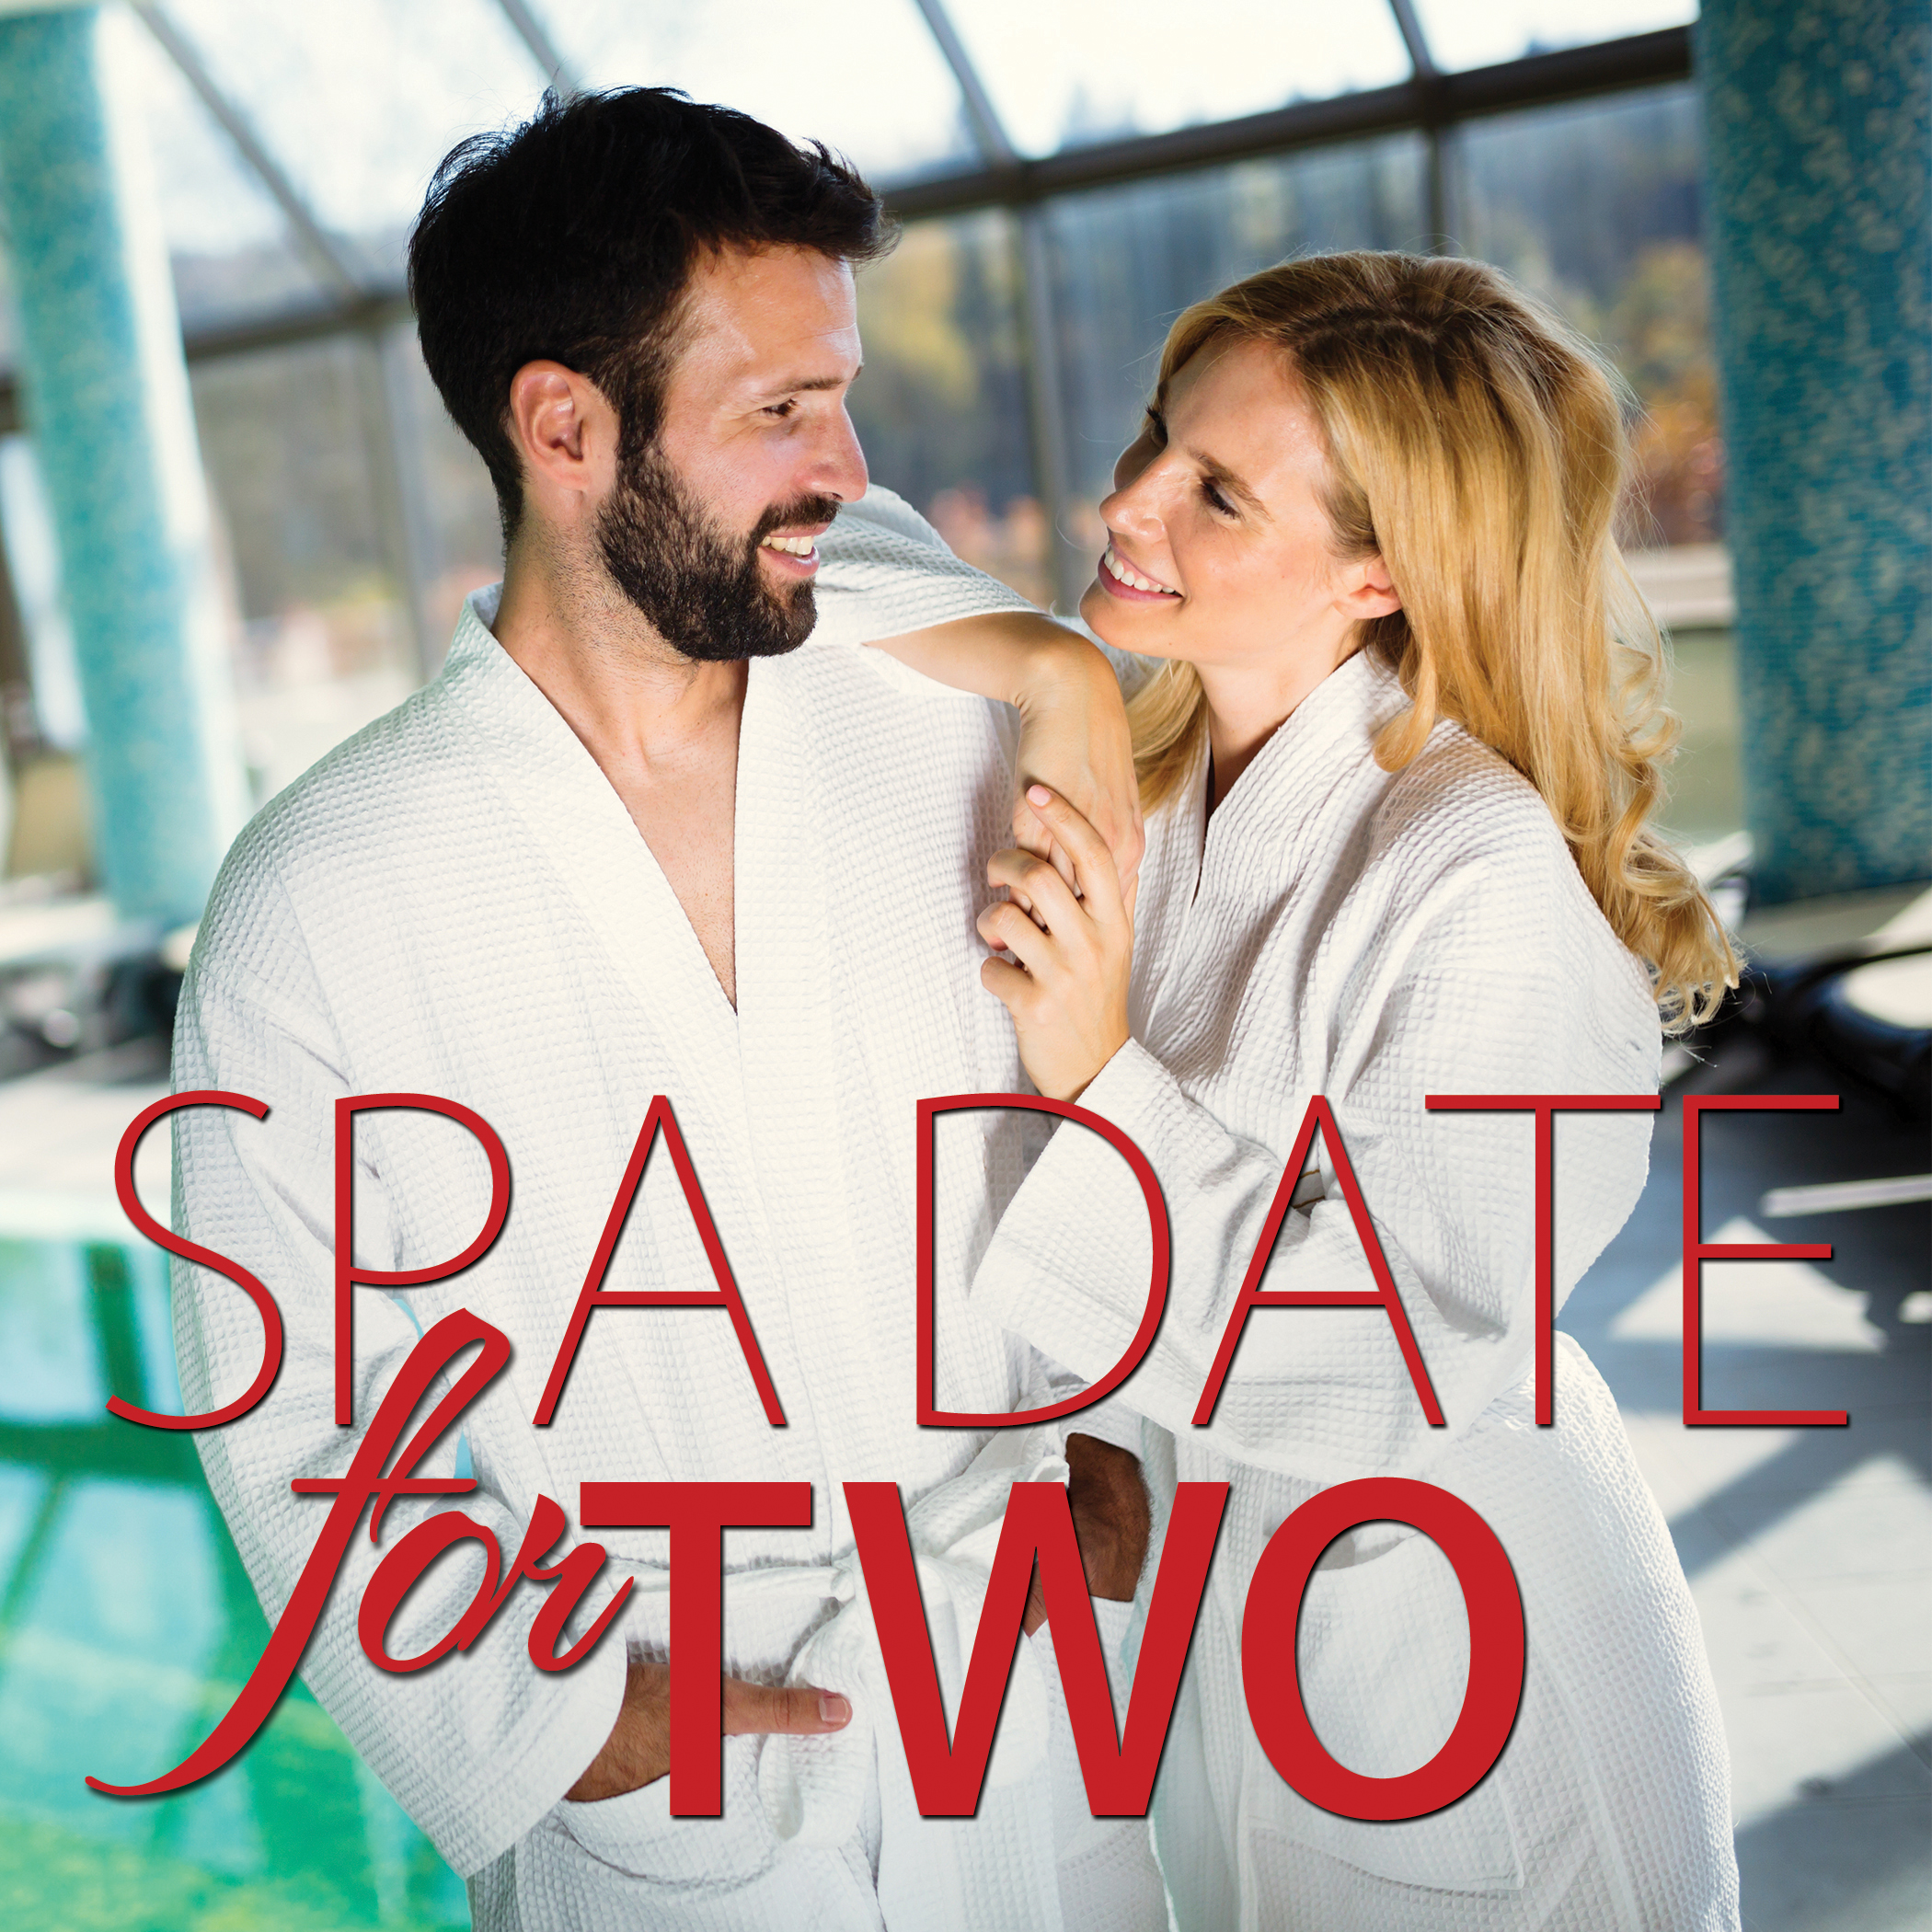 Spa Date for Two